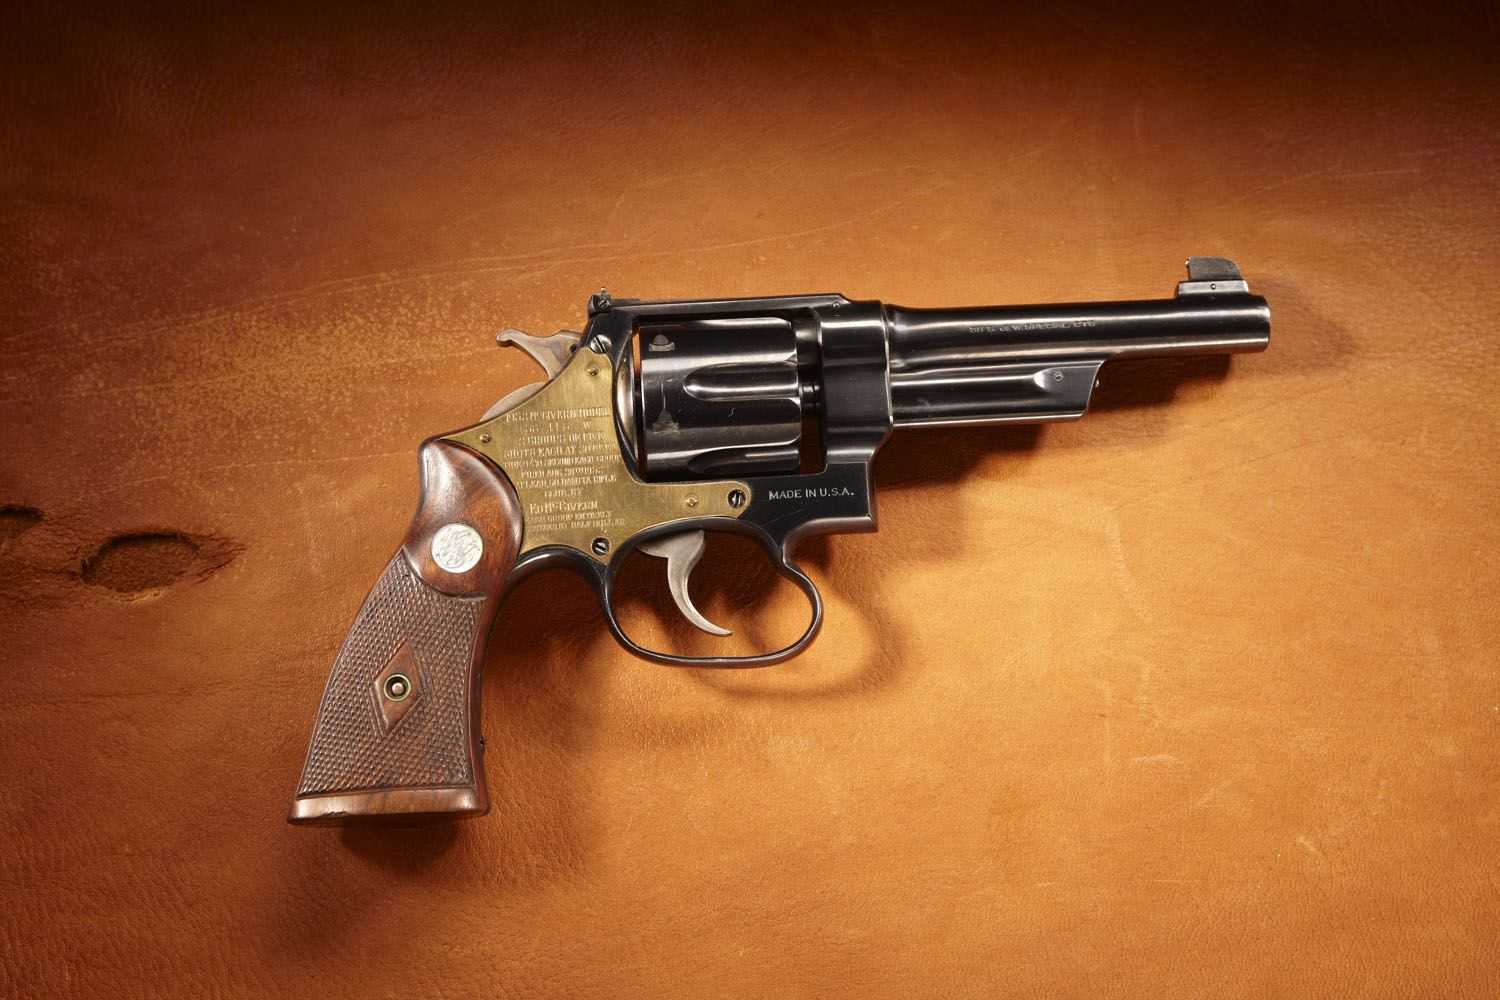 Smith & Wesson Pre-War .38/44 Police Target Model revolver